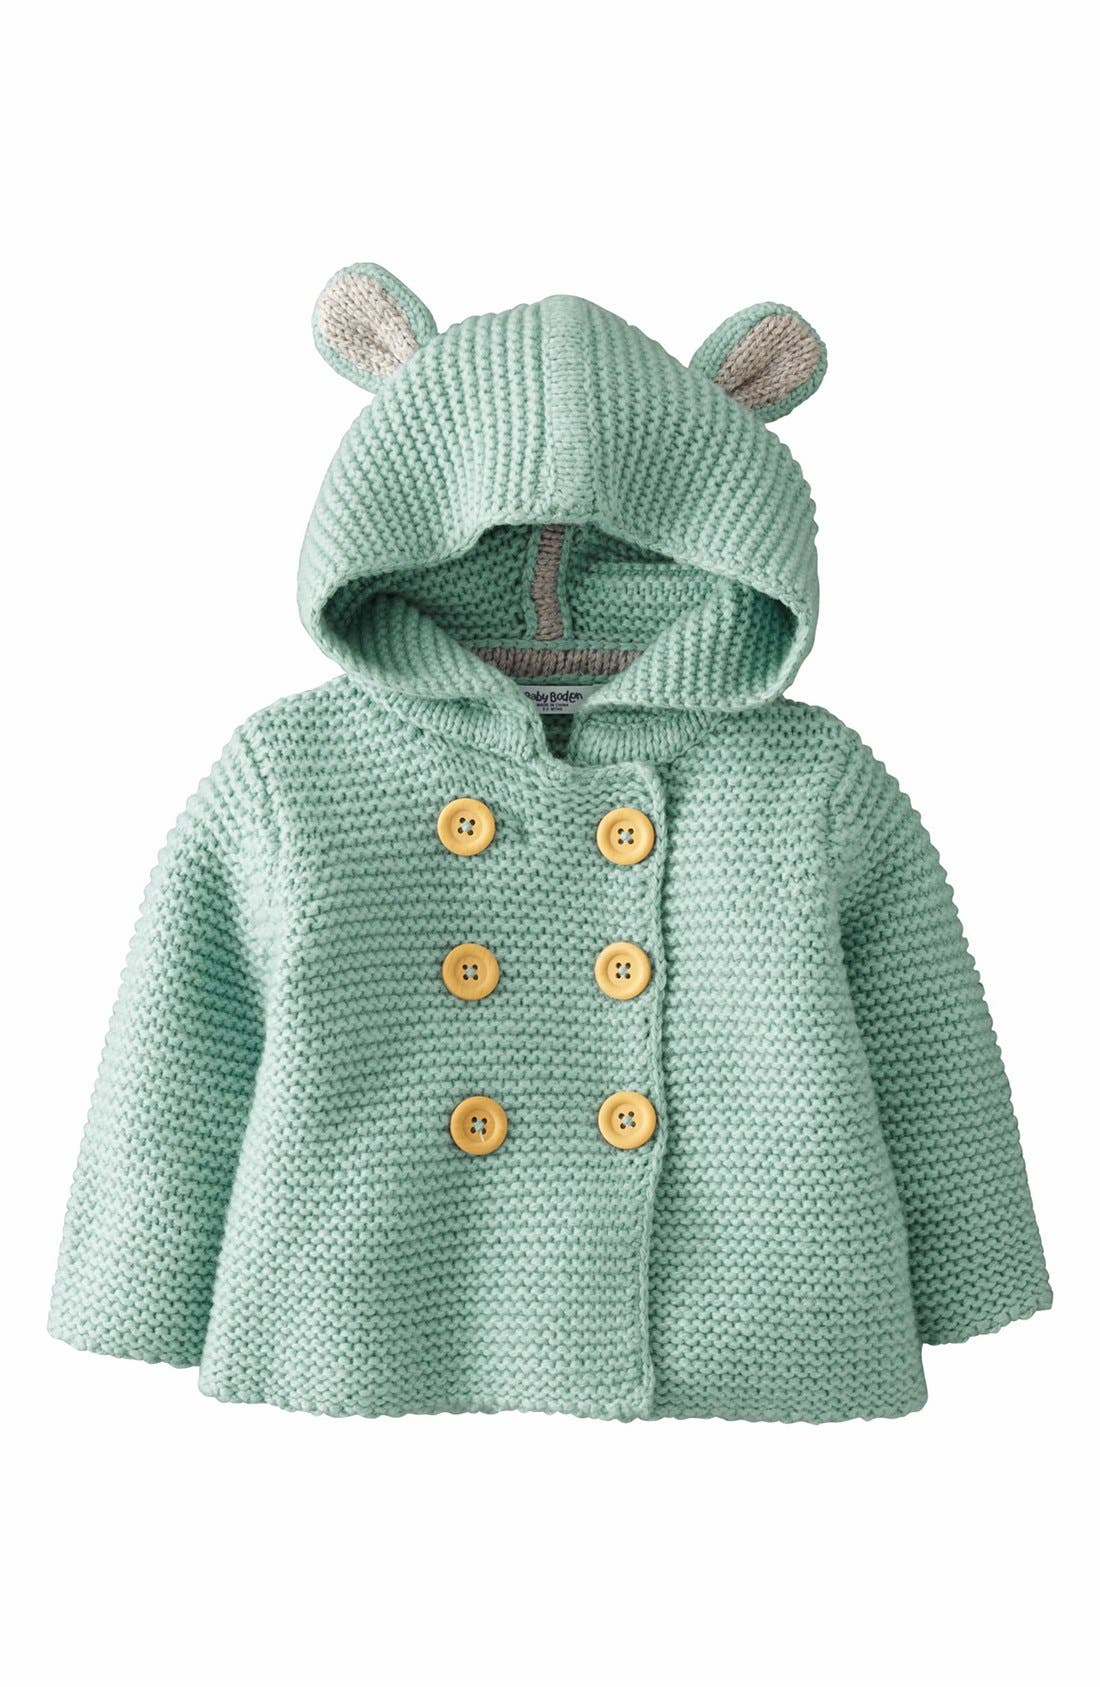 Alternate Image 1 Selected - Mini Boden Hooded Jacket (Baby Girls)